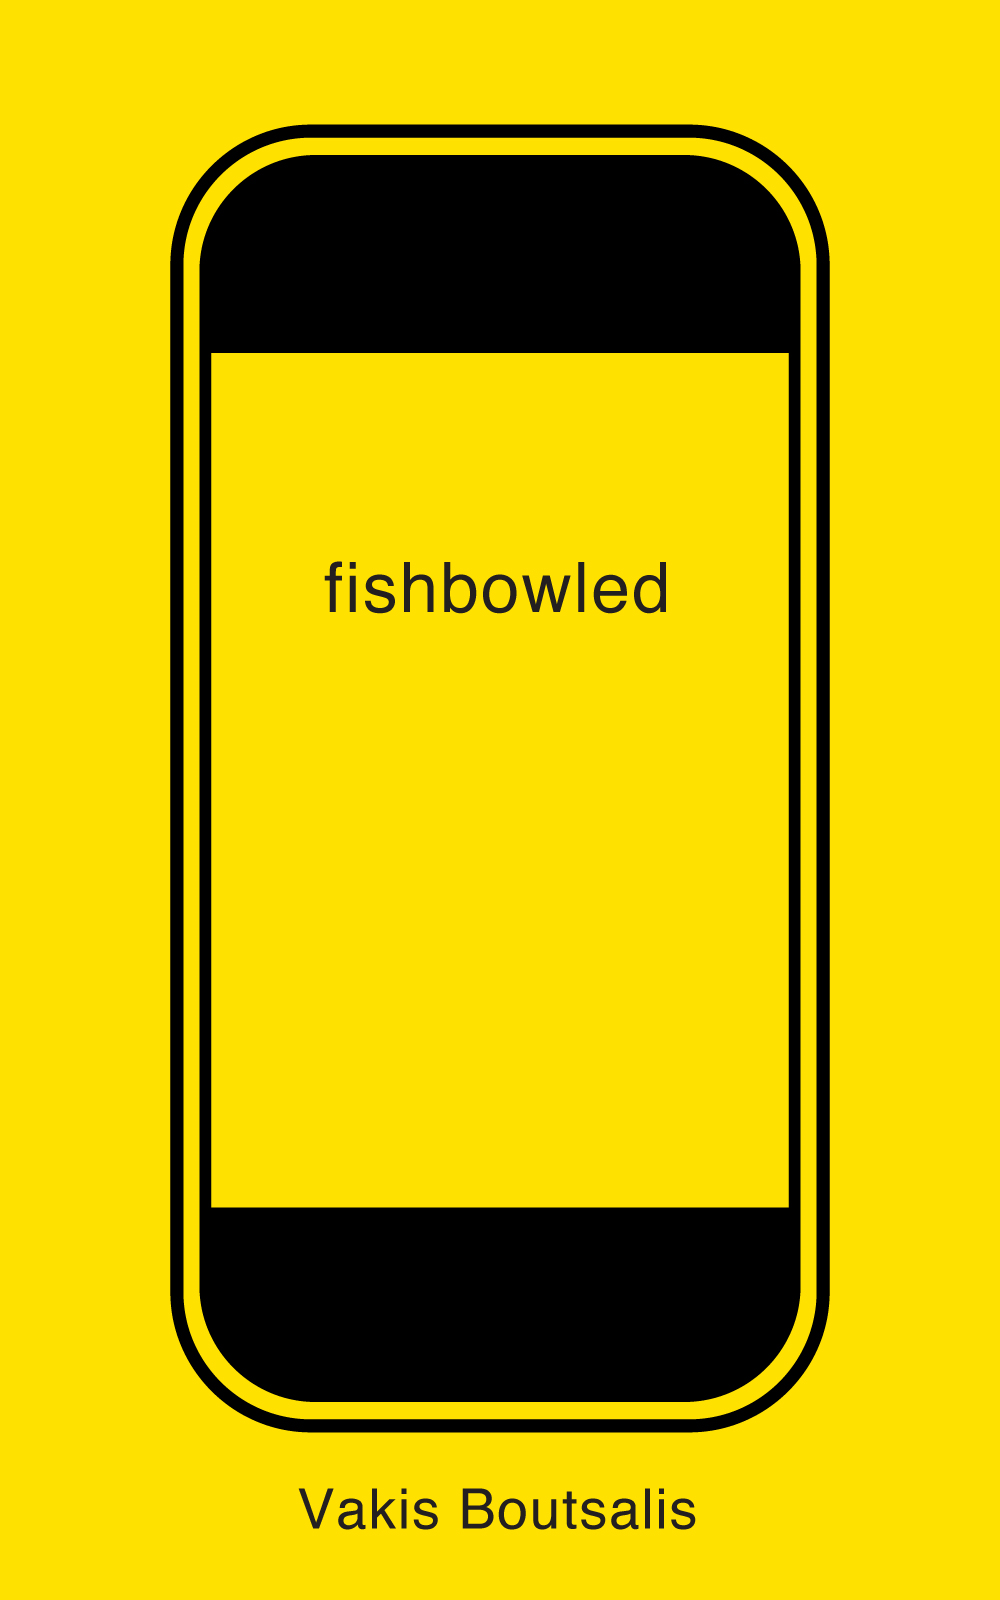 Fishbowled